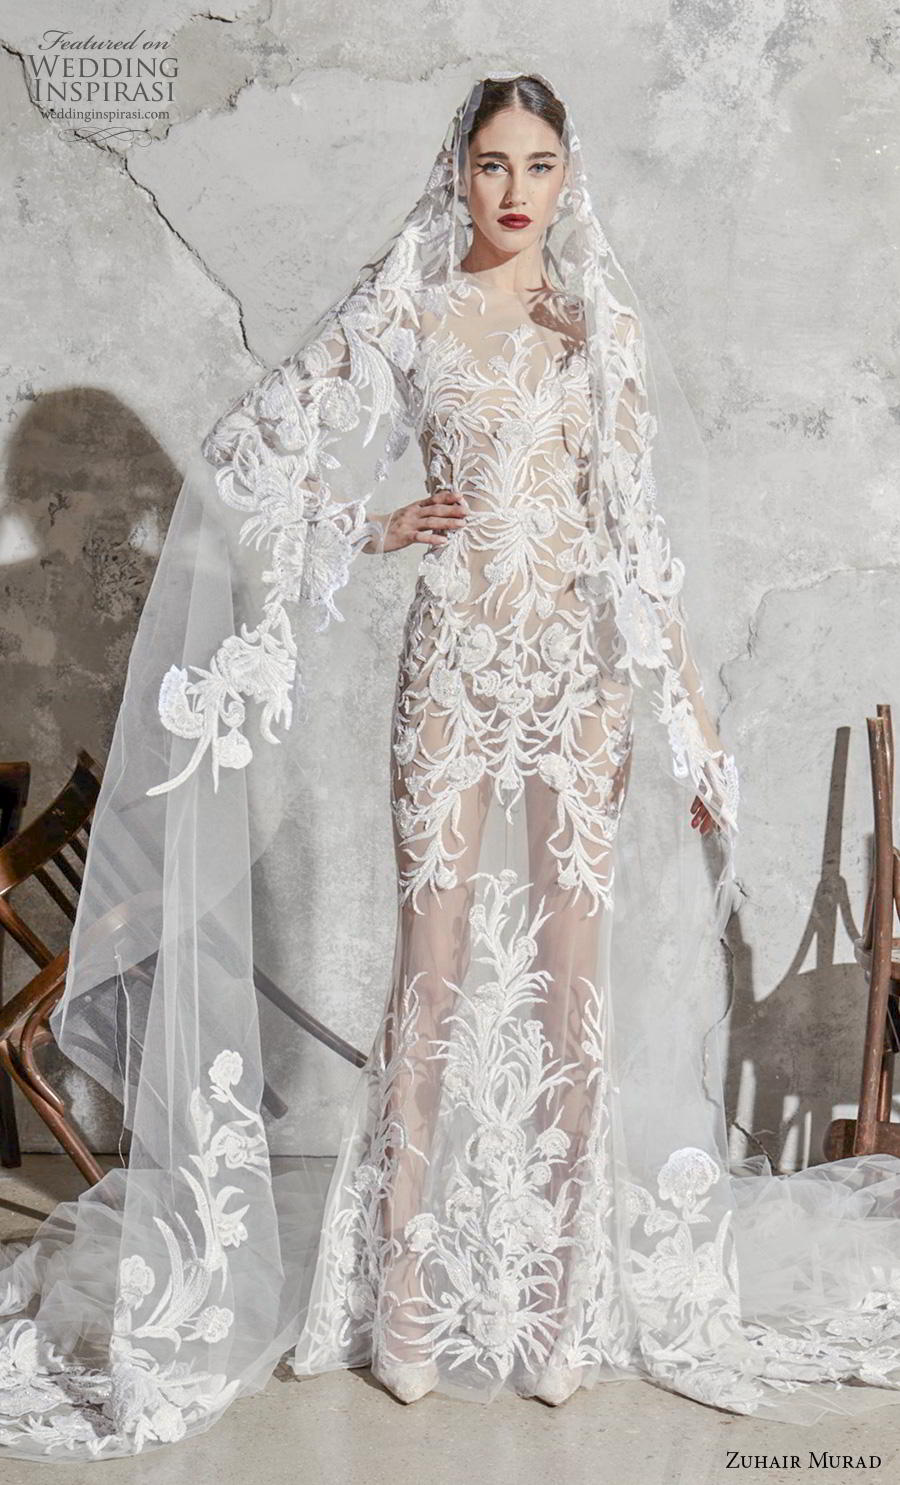 zuhair murad spring 2020 bridal long sleeves illusion jewel neckline full embellishment full sheer glamorous sexy sheath wedding dress (6) mv